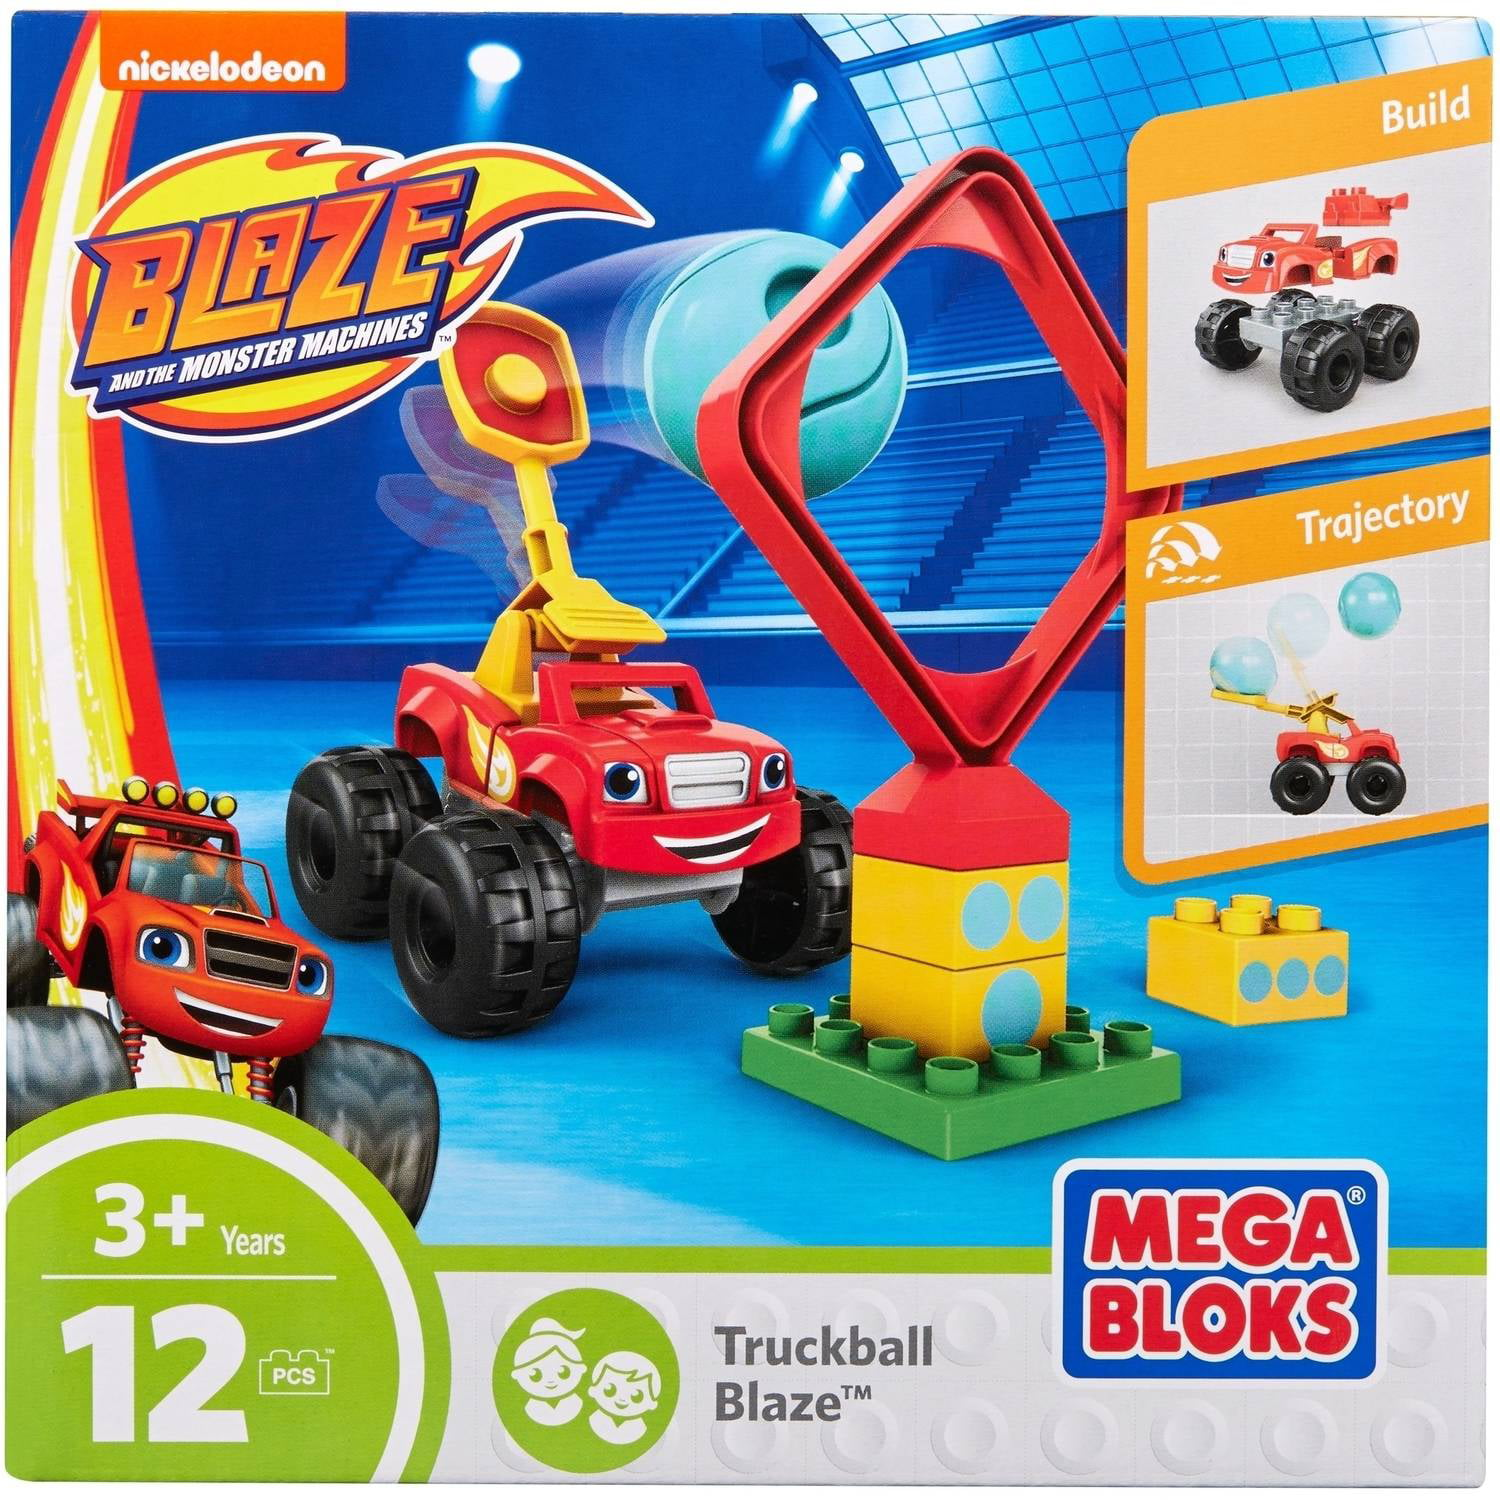 Mega Bloks Nickelodeon Blaze and the Monster Machines Truckball Blaze by Mattel